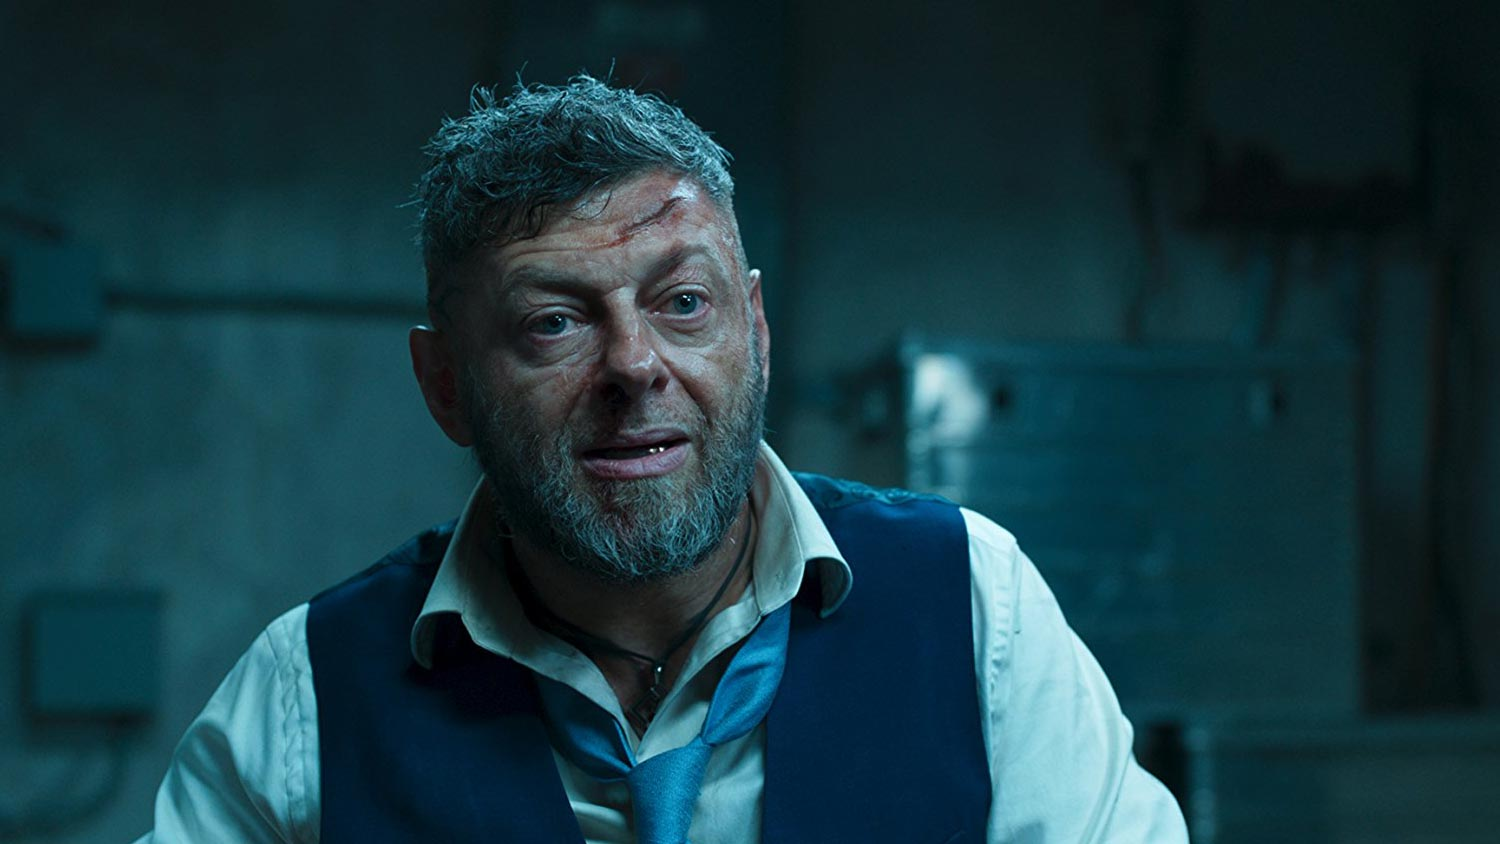 Andy Serkis To Receive Motion Picture Showman Of The Year Award - OC Movie Reviews - Movie Reviews, Movie News, Documentary Reviews, Short Films, Short Film Reviews, Trailers, Movie Trailers, Interviews, film reviews, film news, hollywood, indie films, documentaries